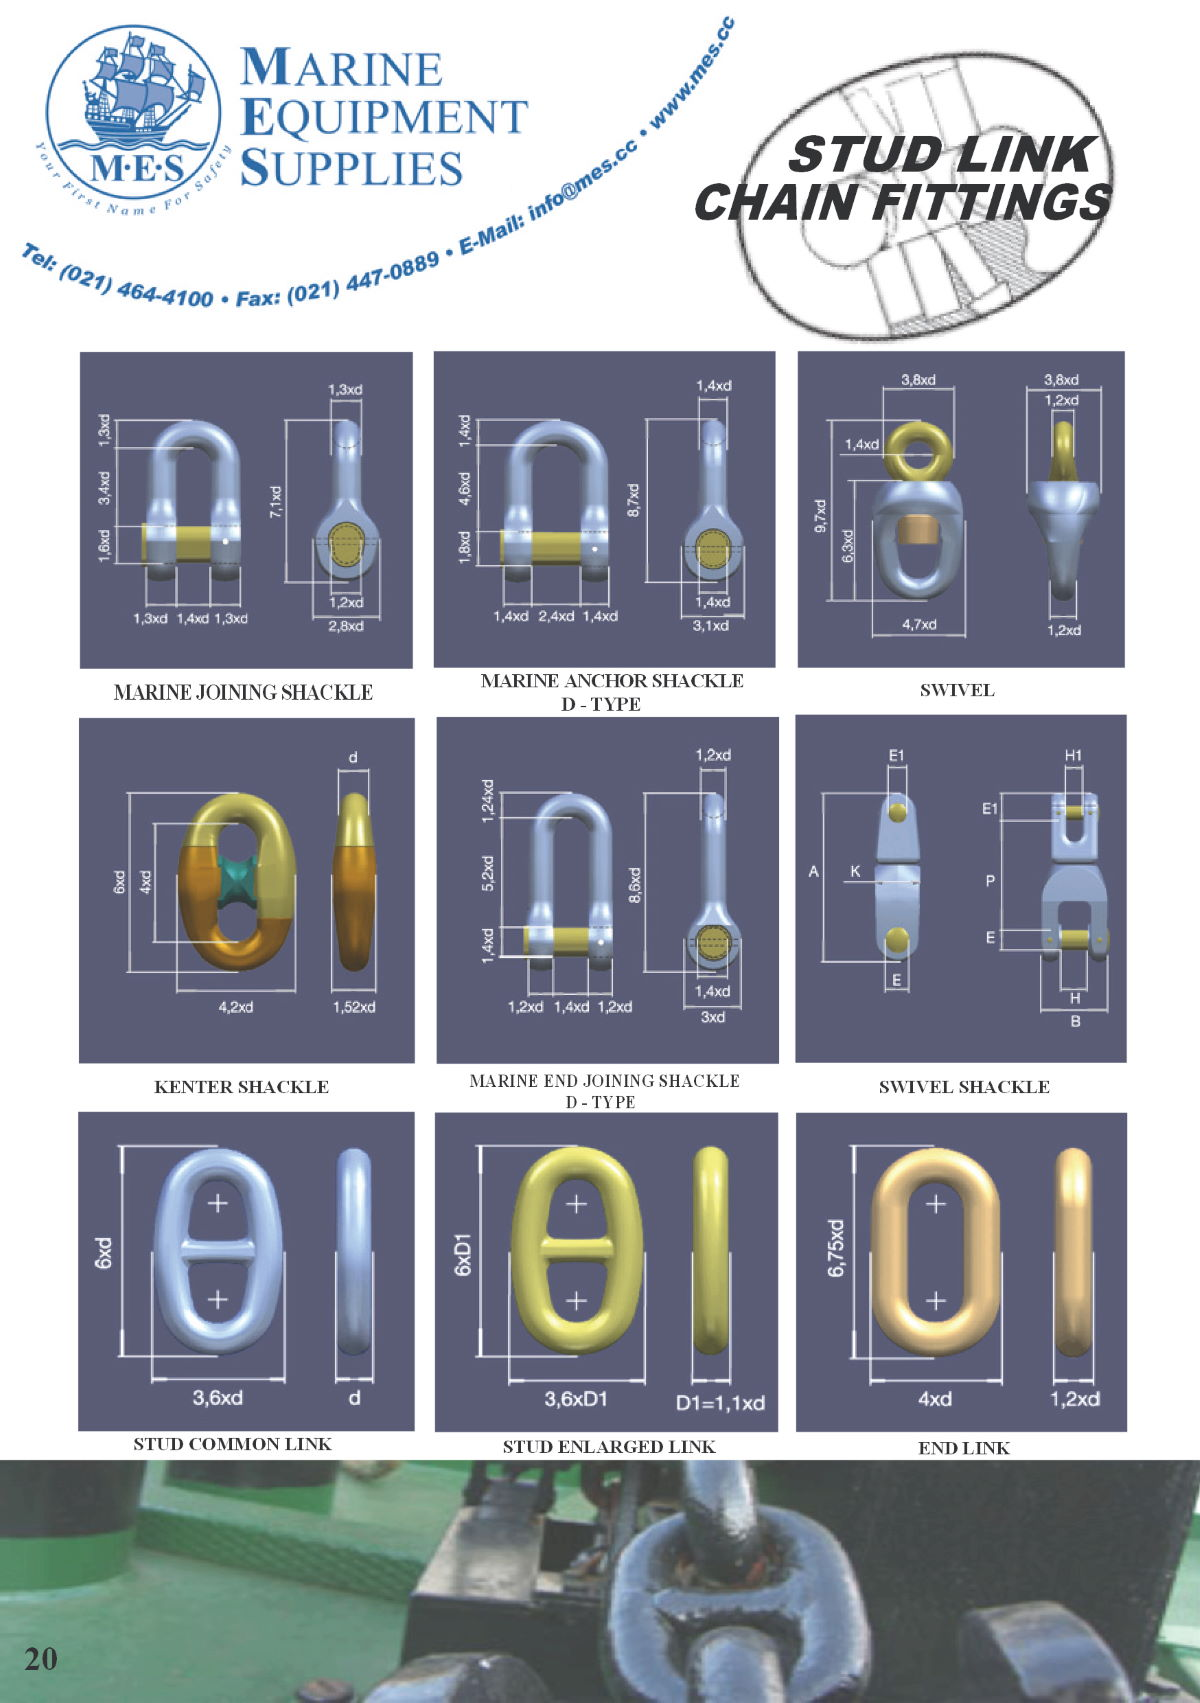 Marine Stud Link Fittings